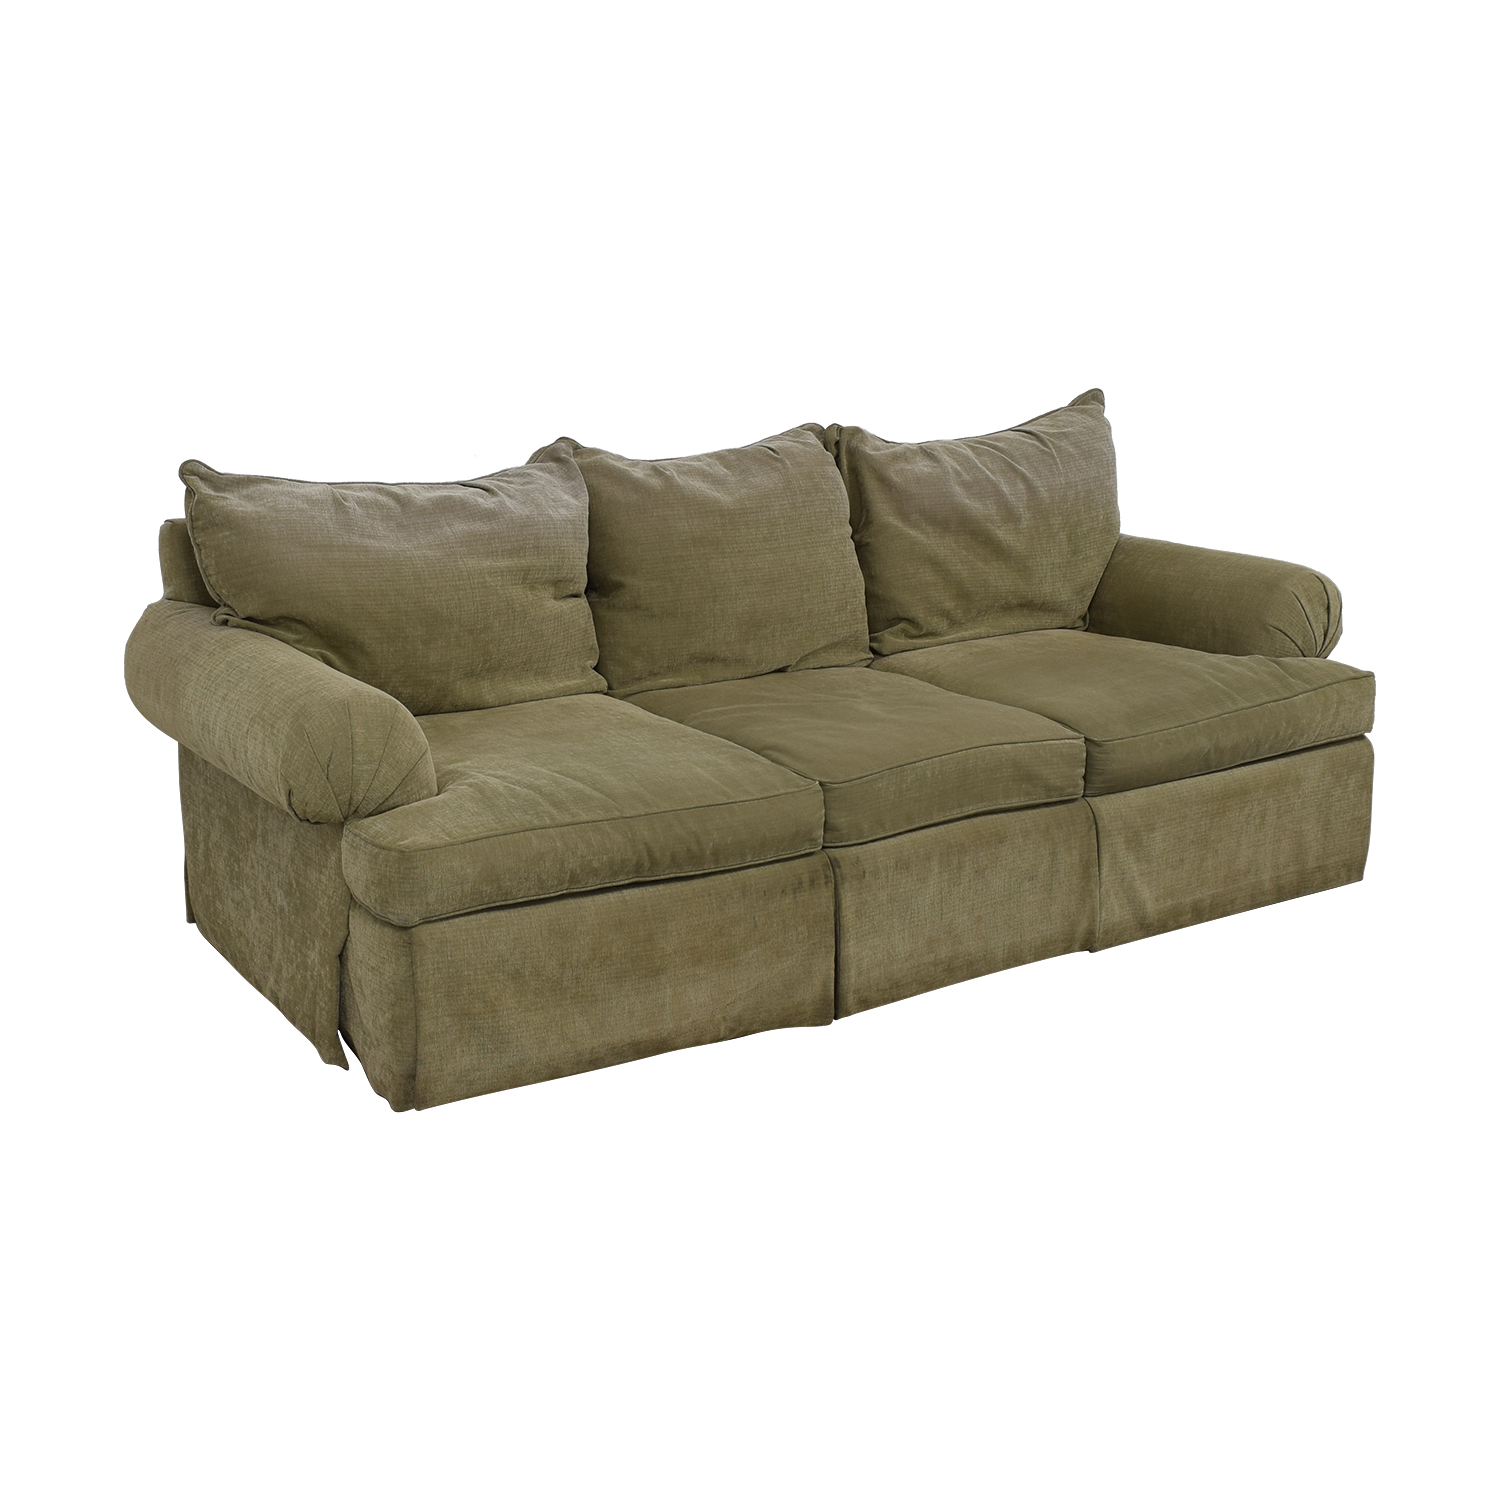 Bernhardt Bernhardt Three-Cushion Sofa second hand